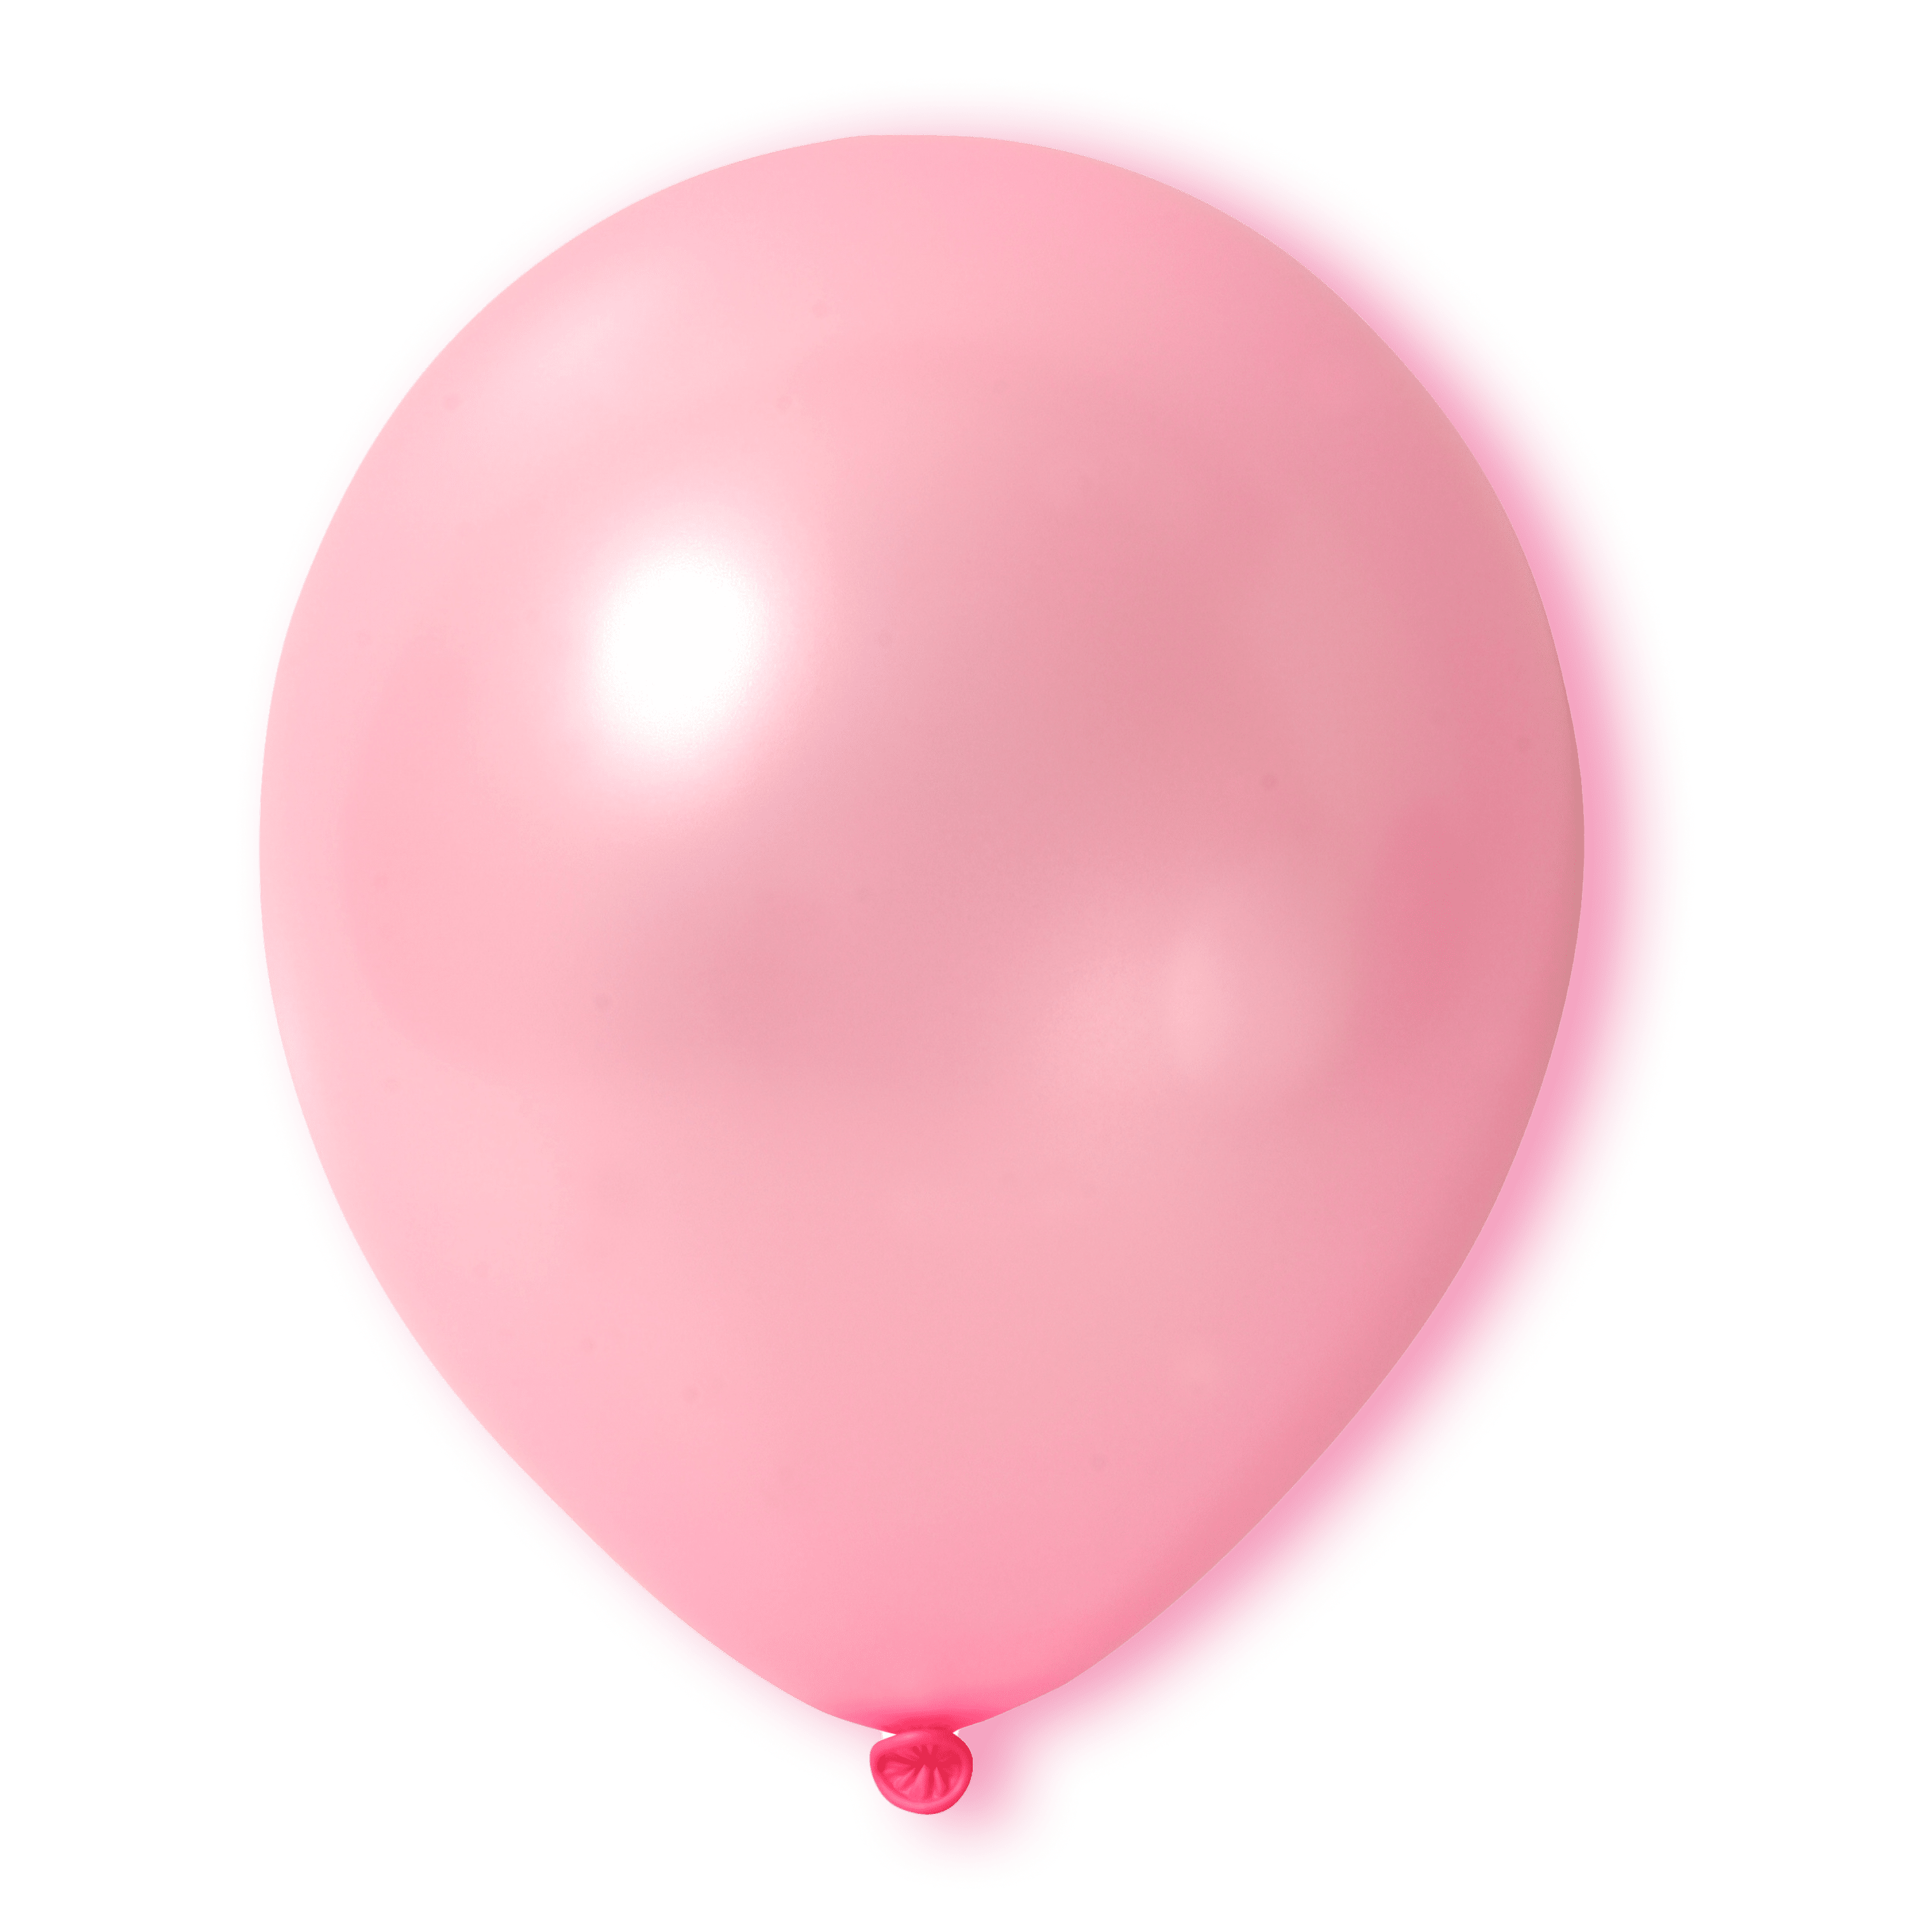 A pink balloon floating